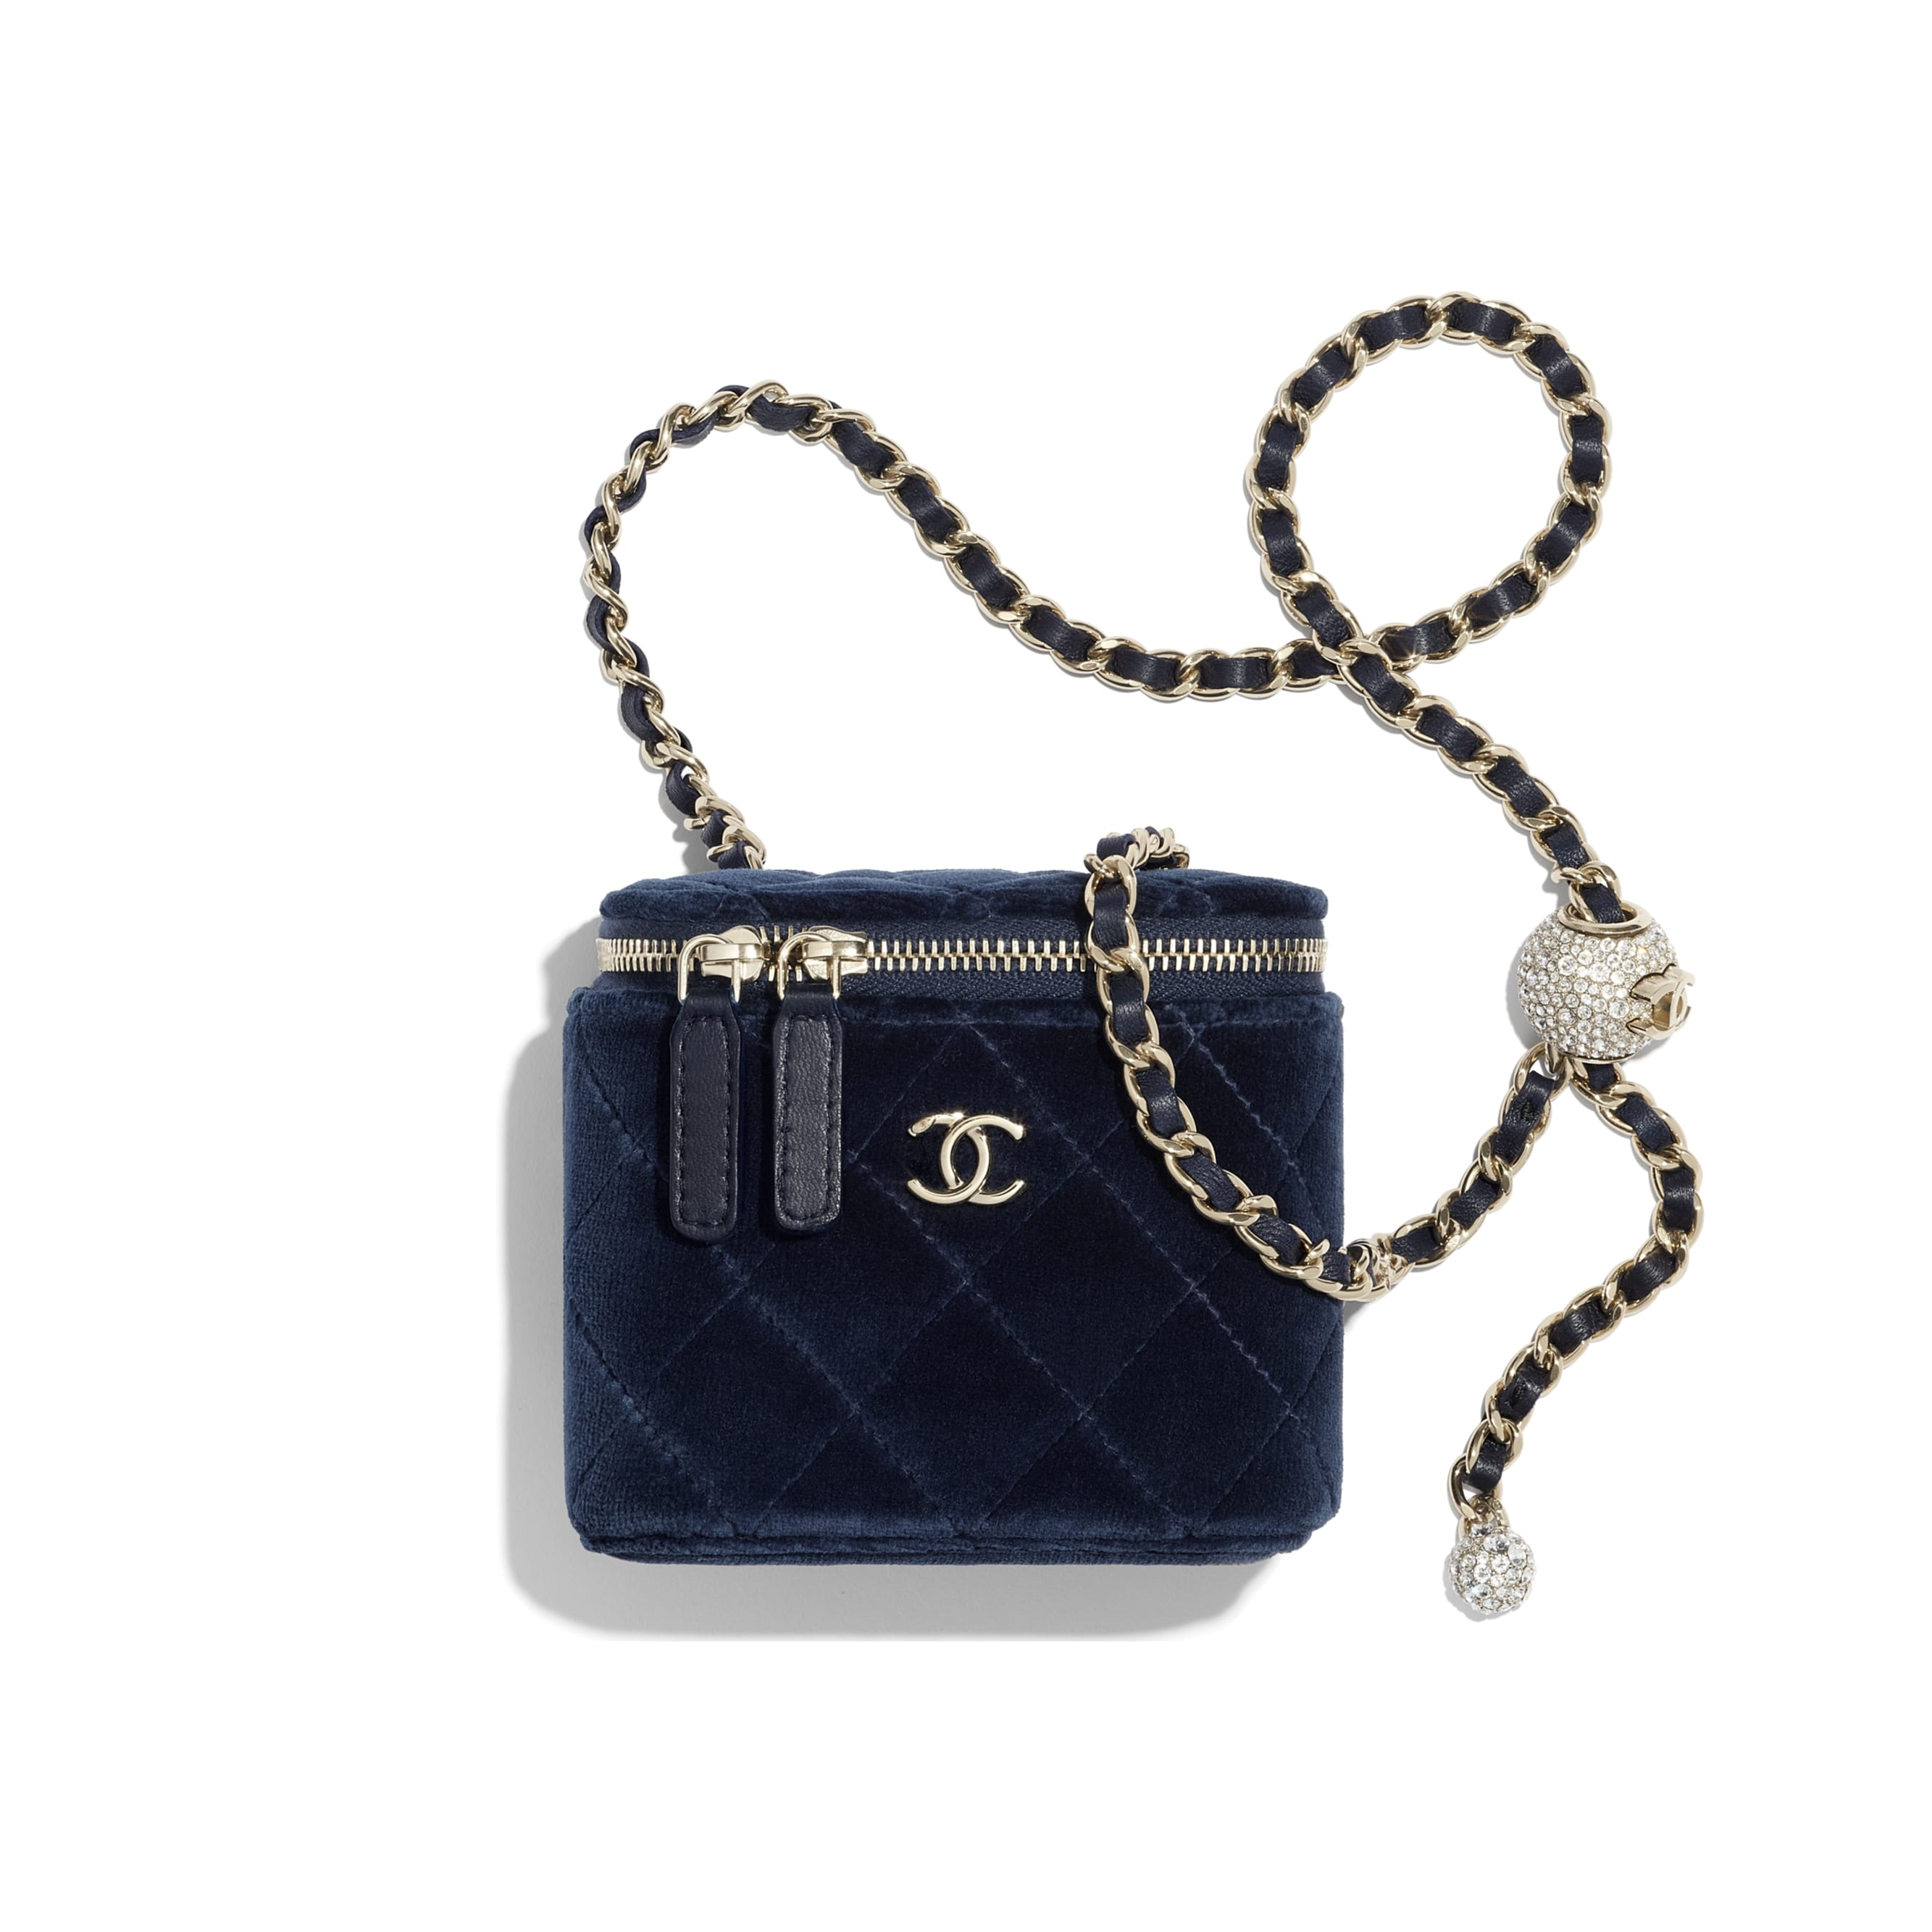 Small Classic Box with Chain - Navy Blue - Velvet, Diamanté & Gold-Tone Metal - CHANEL - Default view - see standard sized version